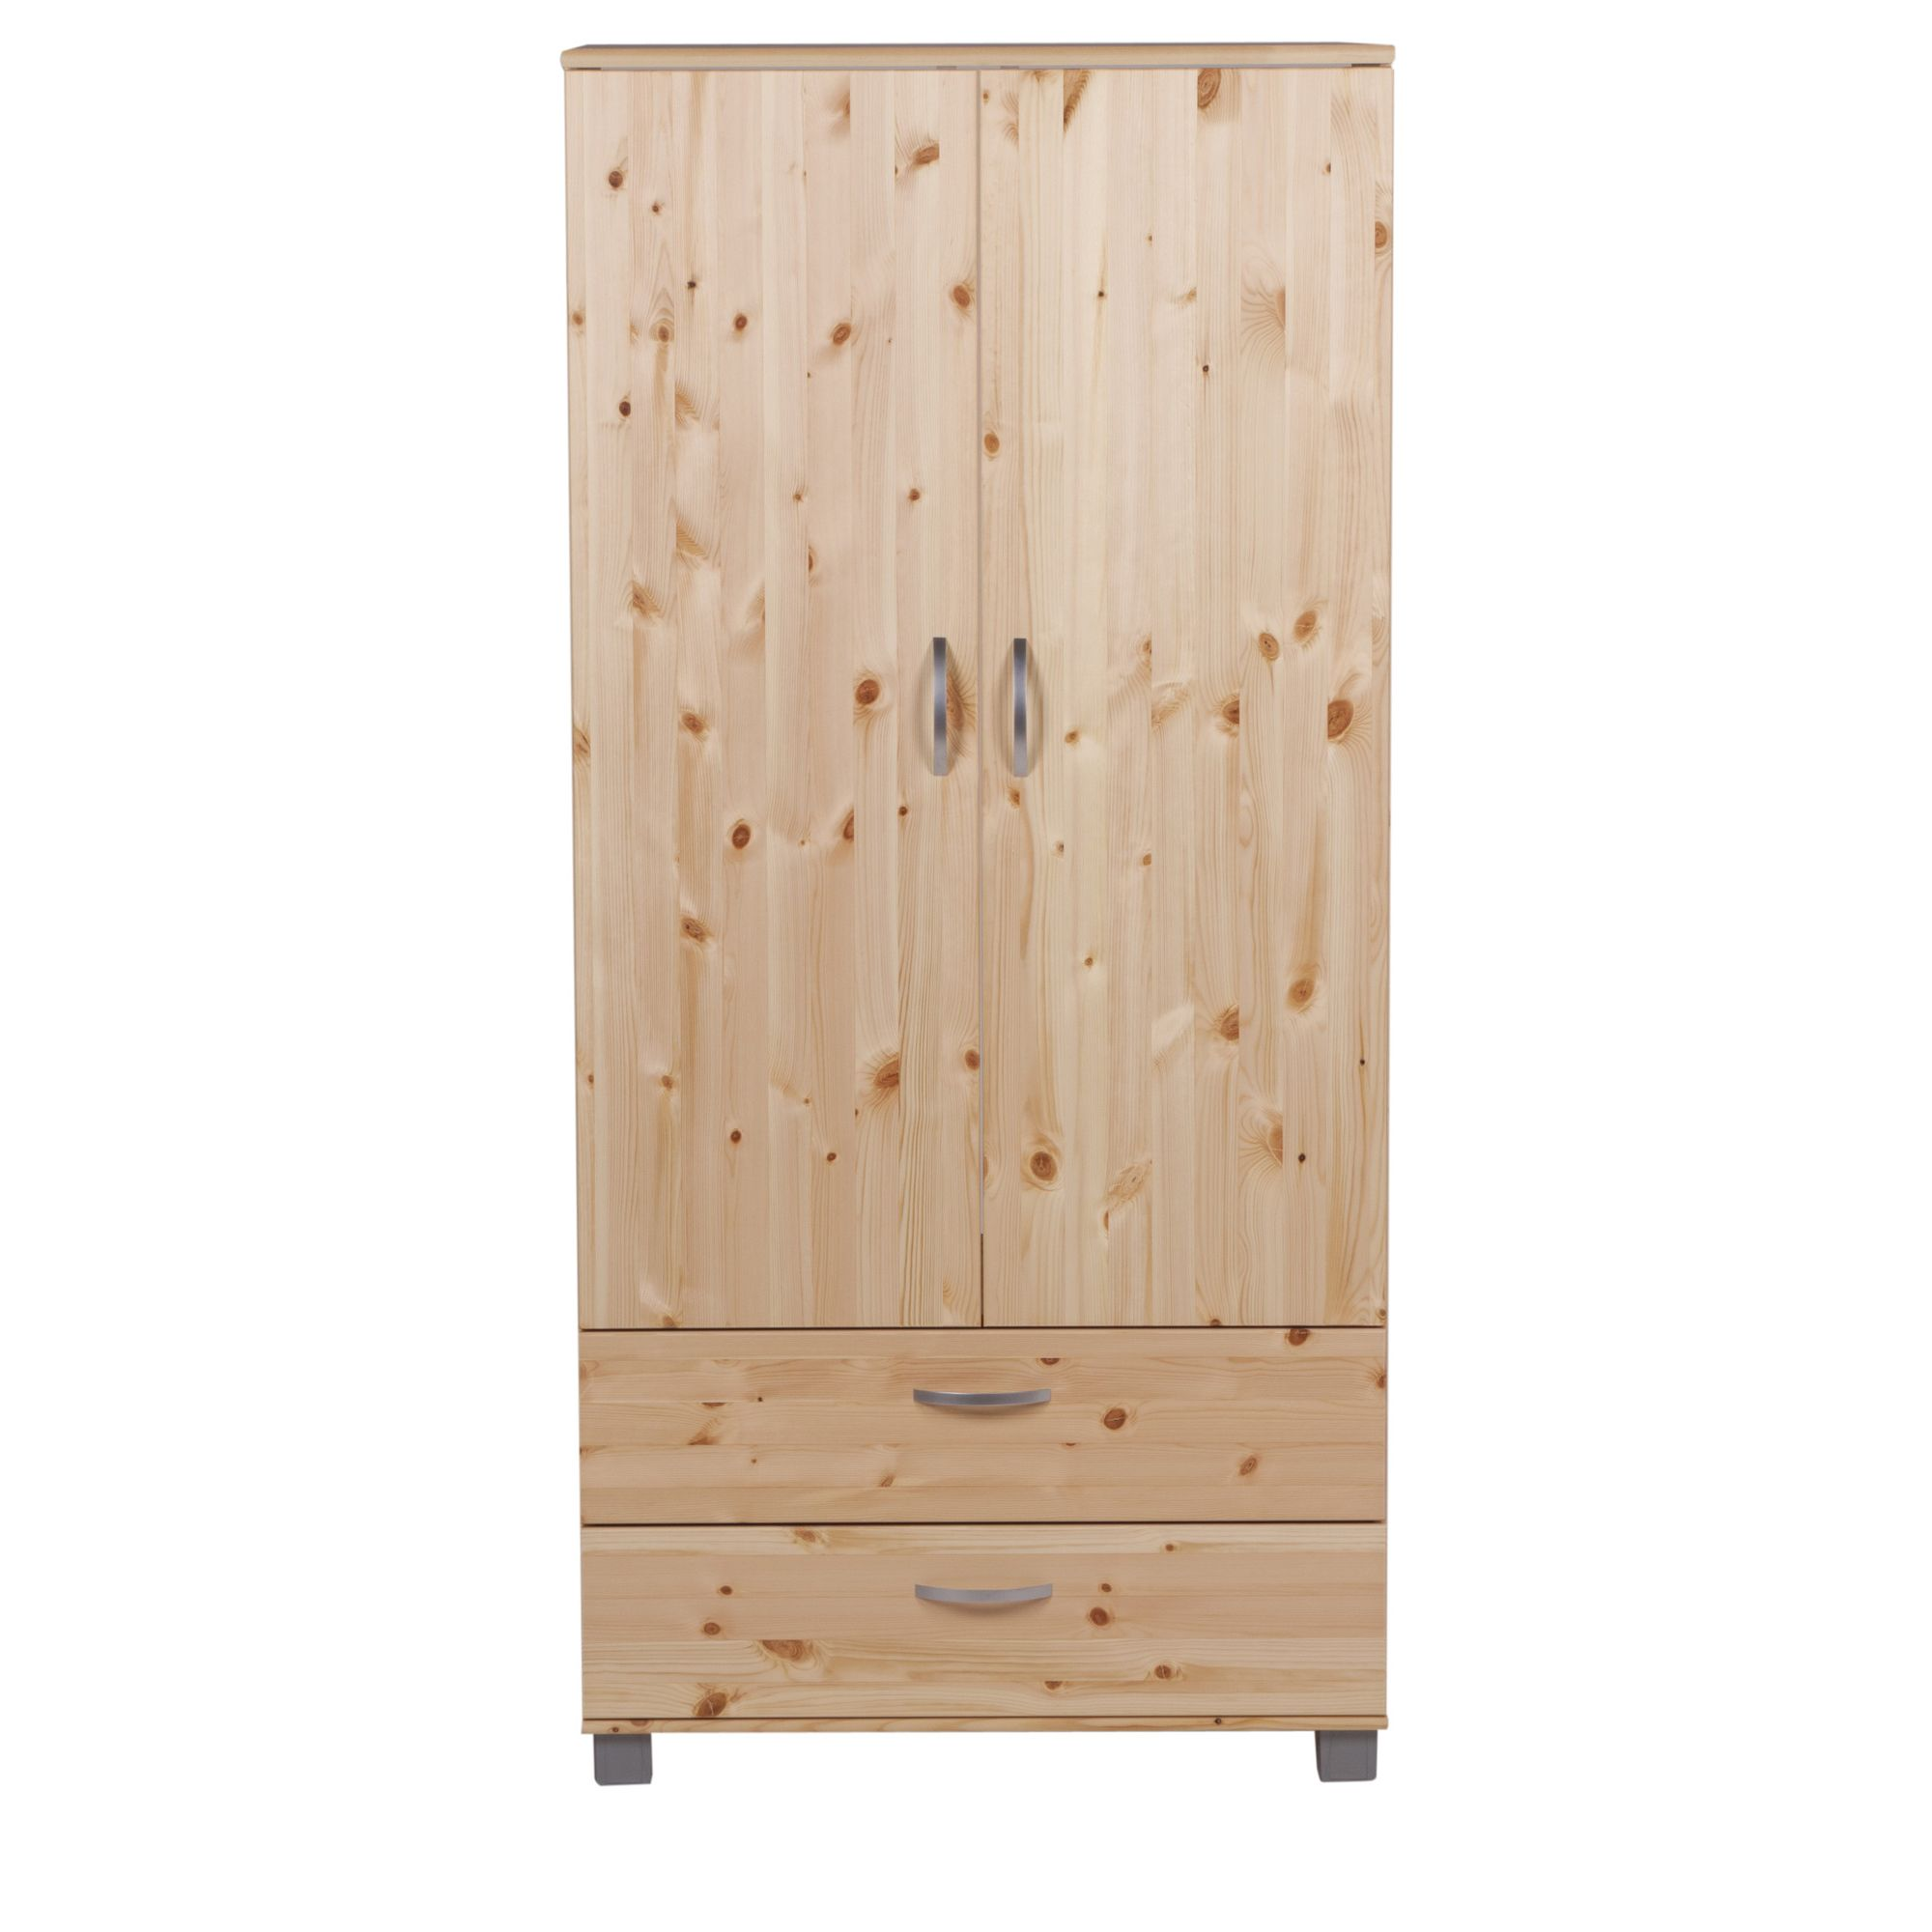 Thuka Trendy Two Door Two Drawer Wardrobe - White - Black at Tesco Direct